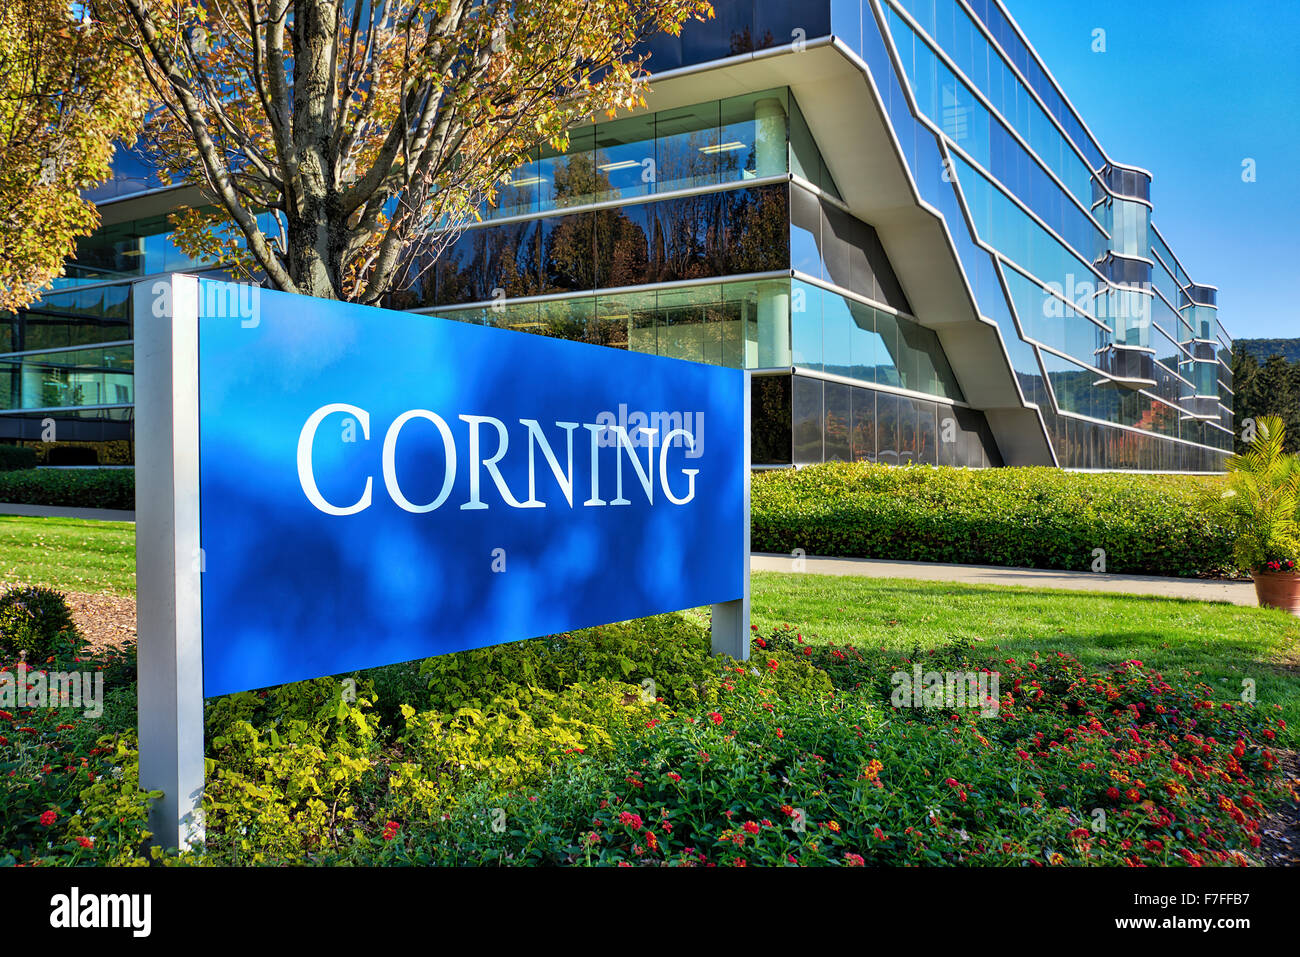 Corning Inc. Headquarters, Steuben County, New York, USA - Stock Image